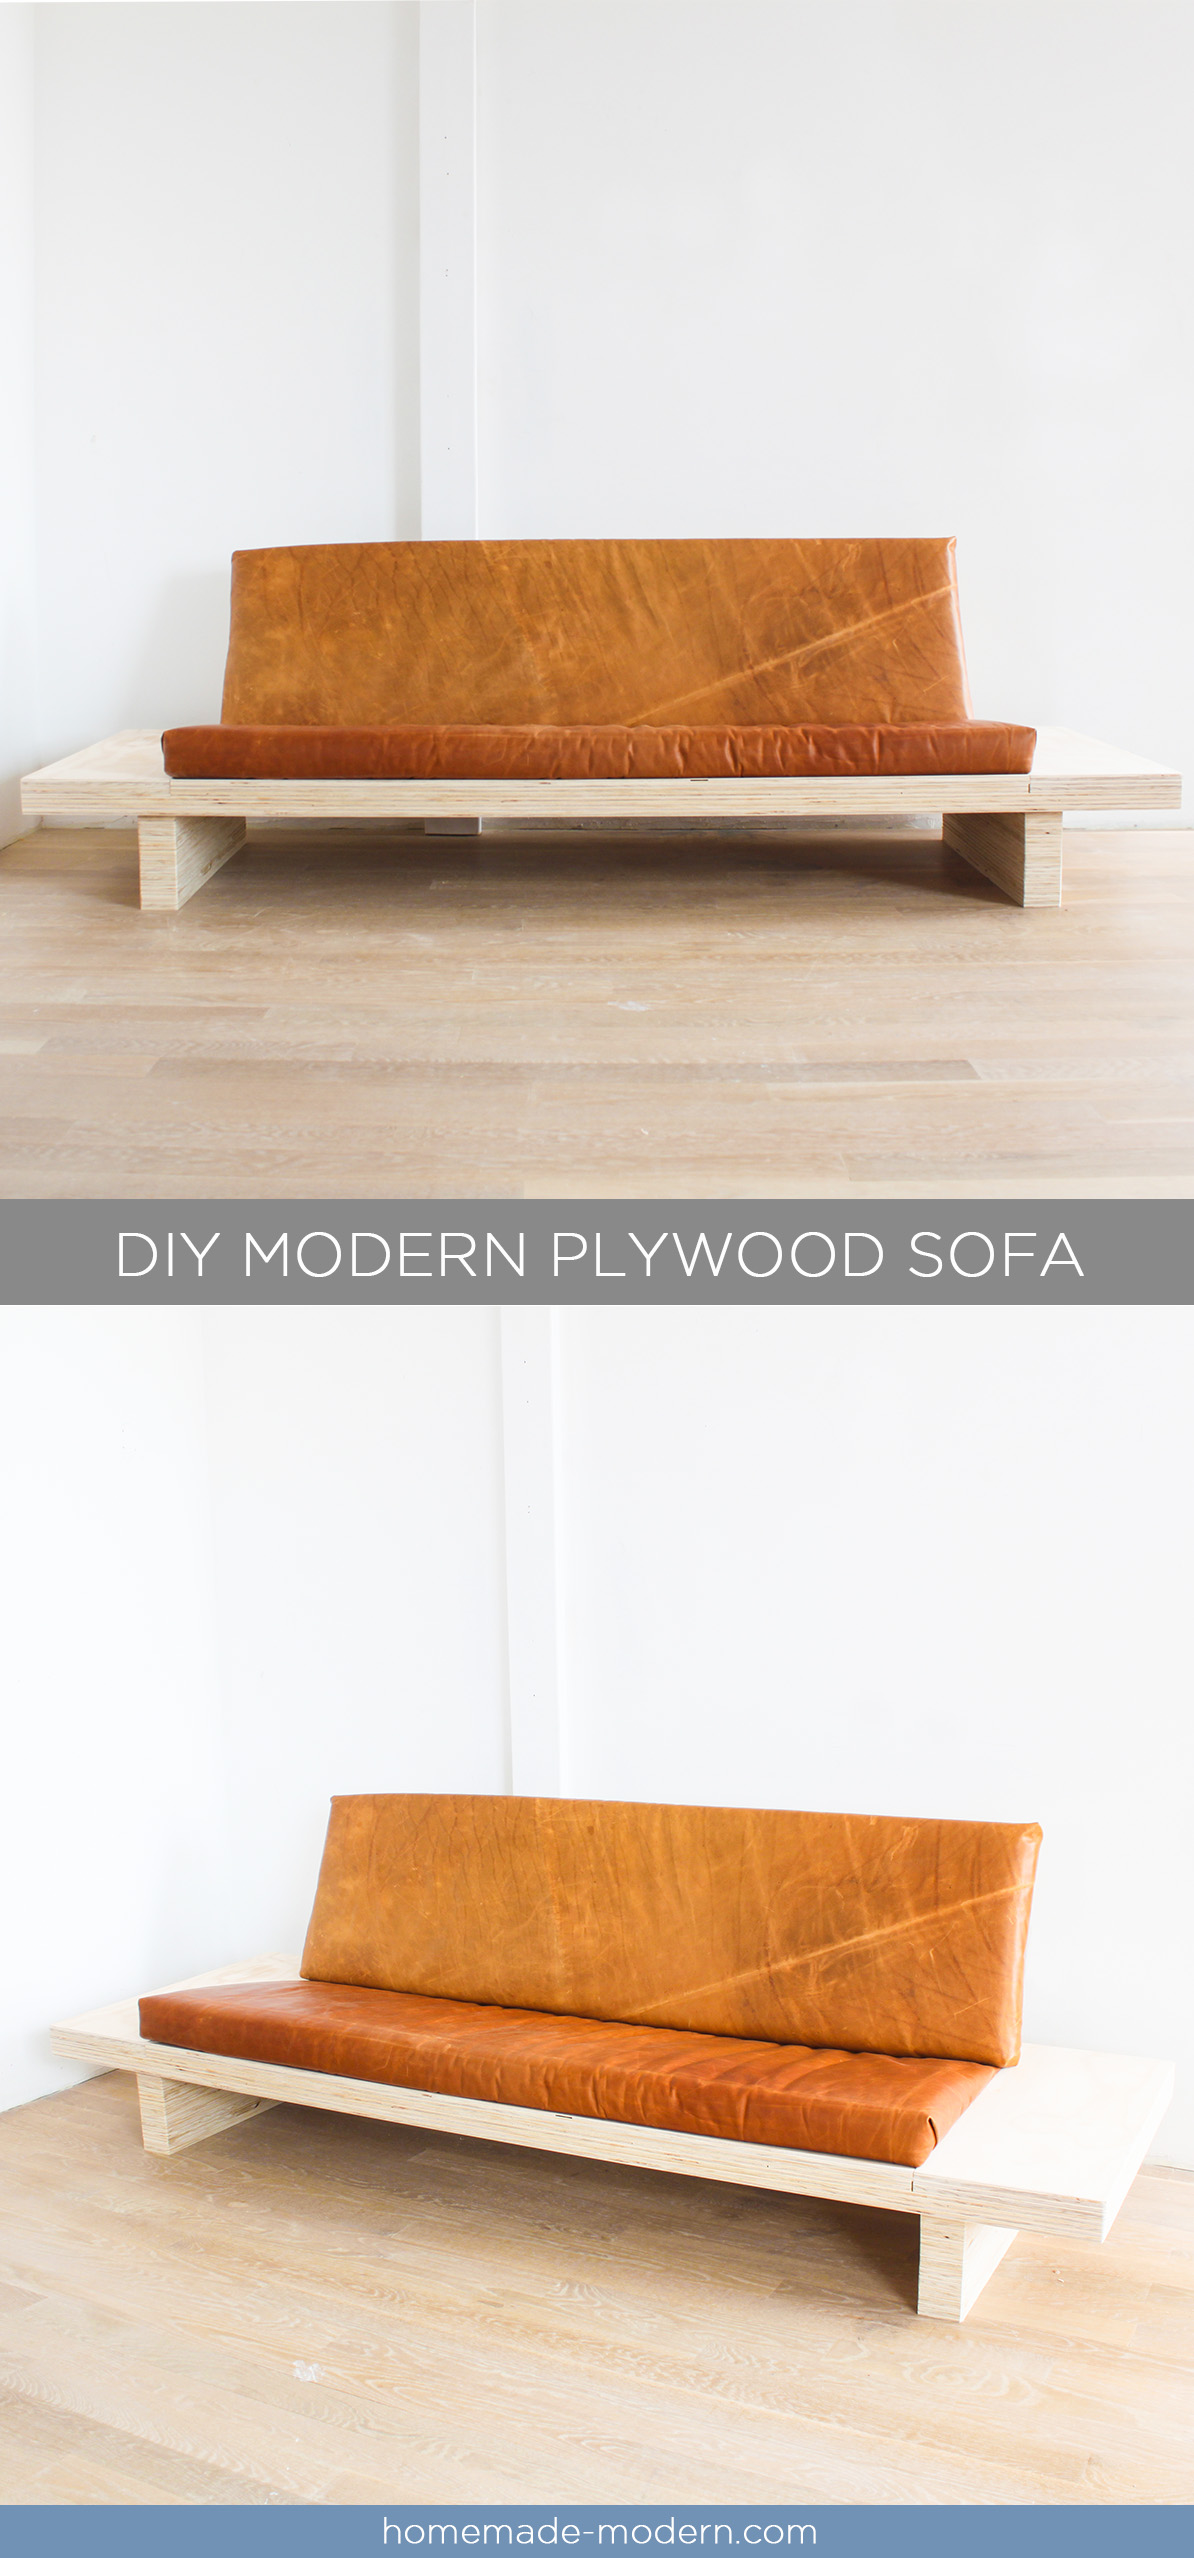 This DIY Modern Plywood Sofa Is Made Out Of 2 1/2u201d Sheets